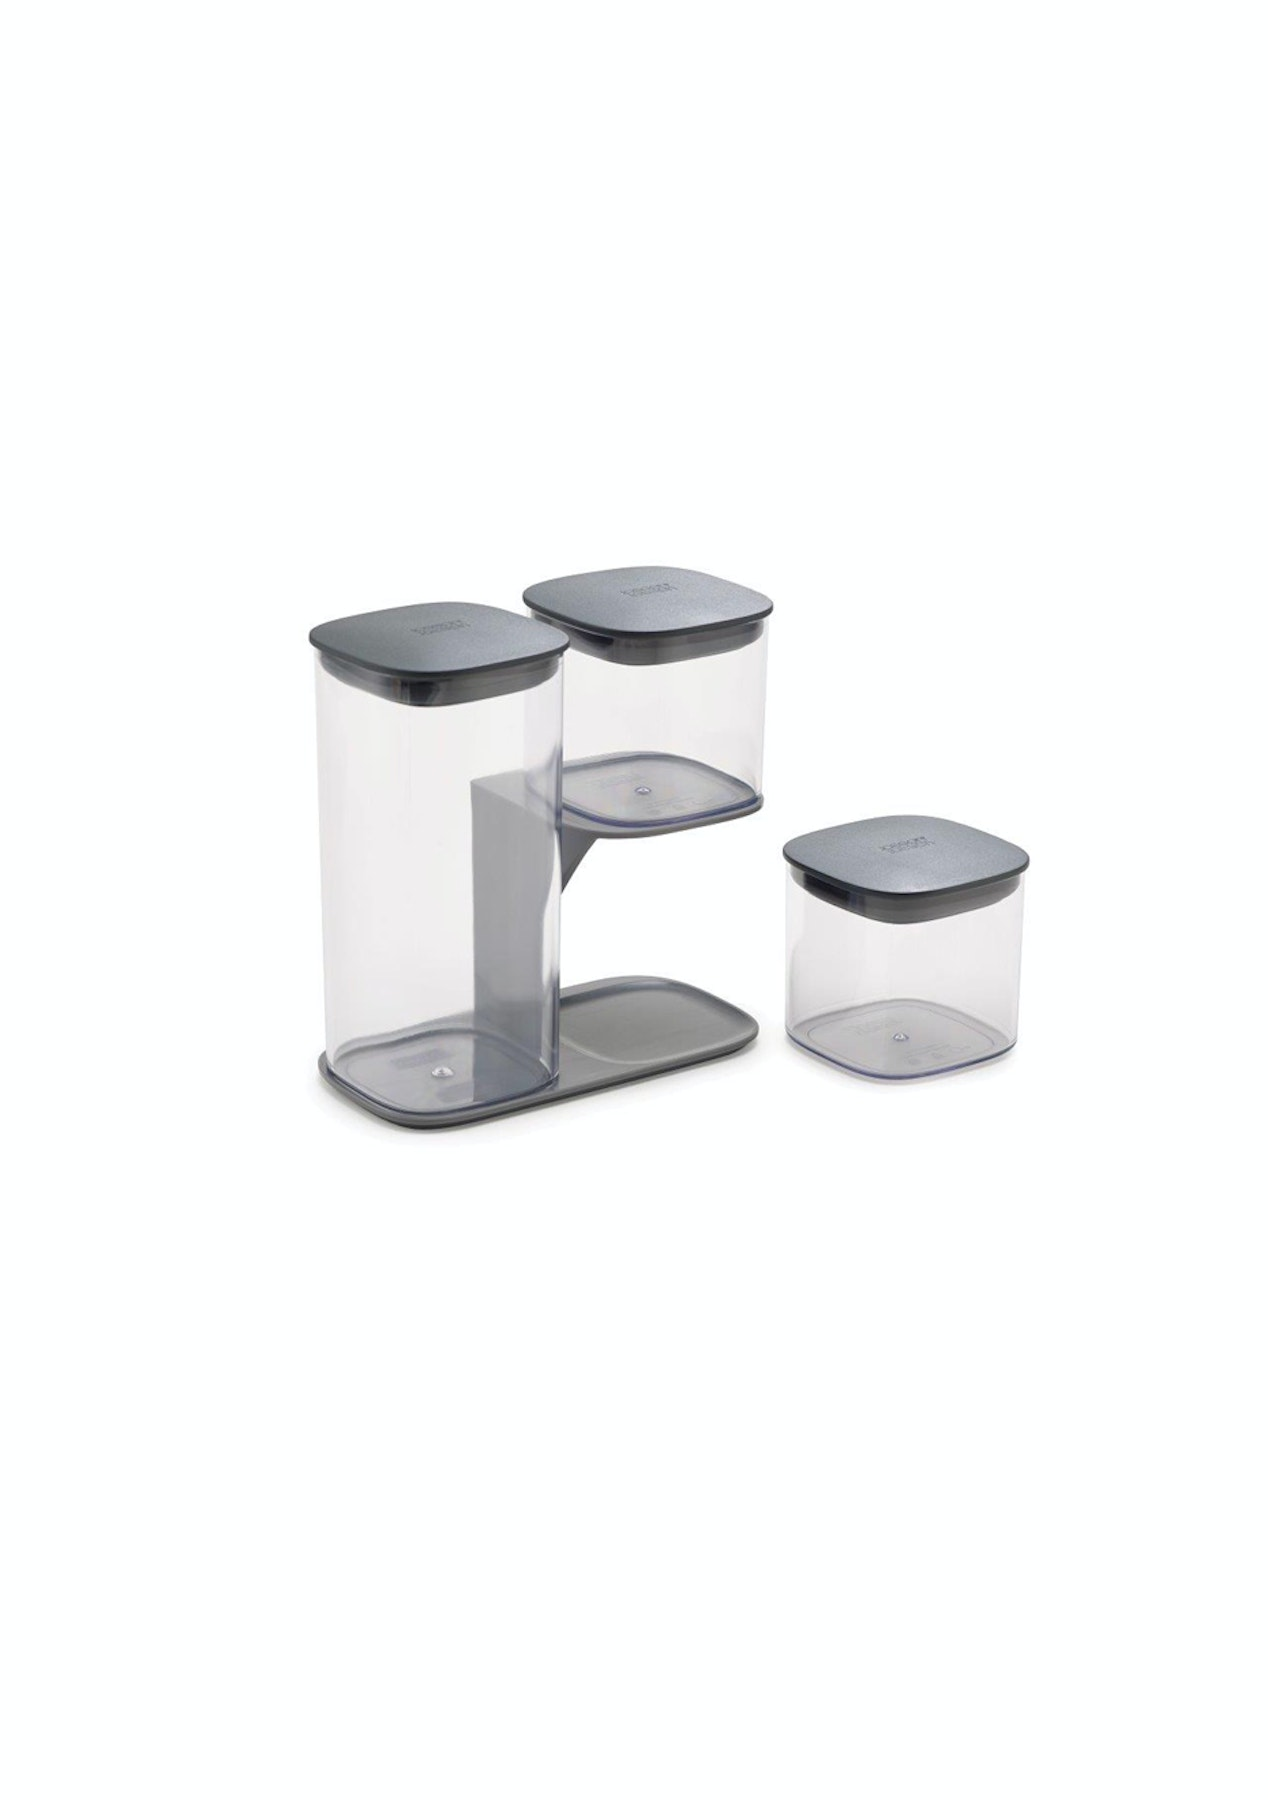 Joseph Podium Dry Food Storage Container 3 Piece Set With Stand Last Chance Up To 60 Off Onceit